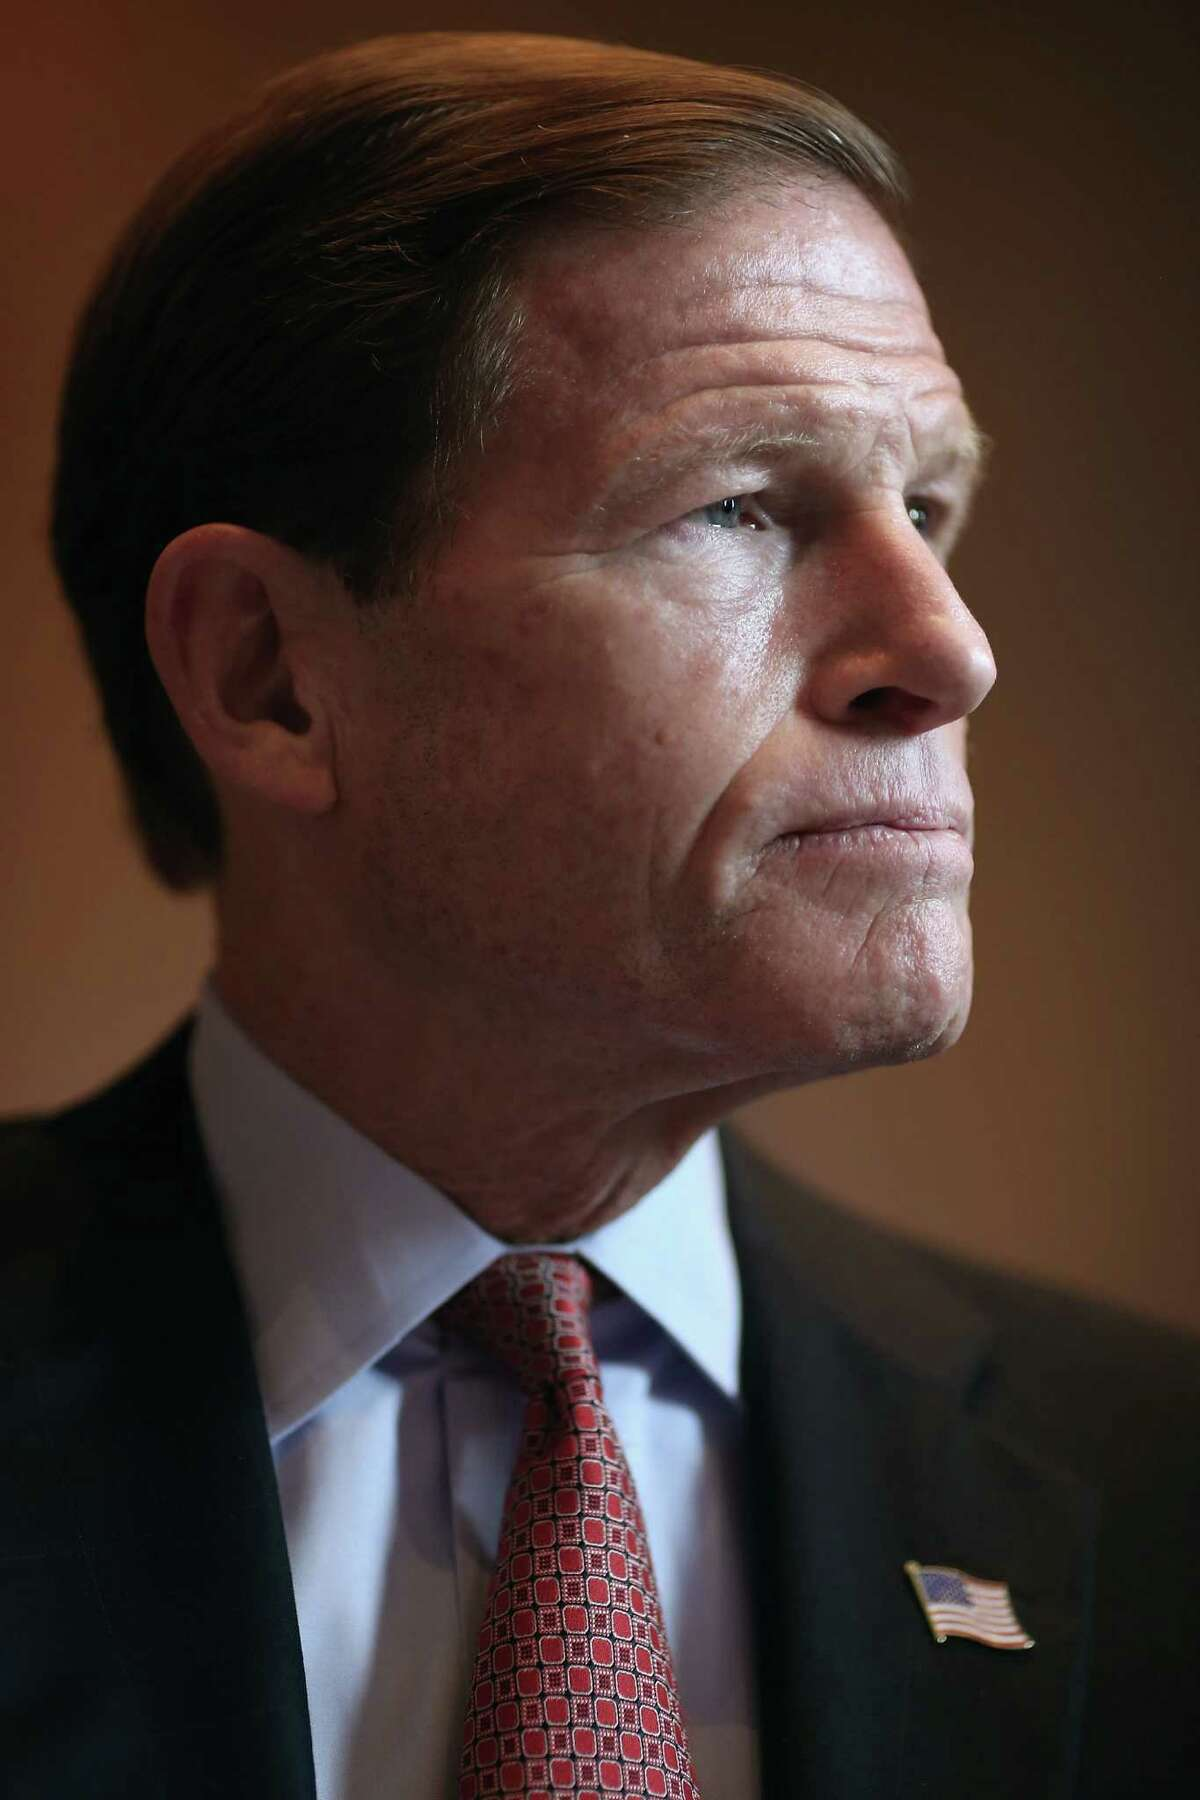 Sen. Richard Blumenthal (D-CT) participates in a news conference about preserving Medicaid funding during the